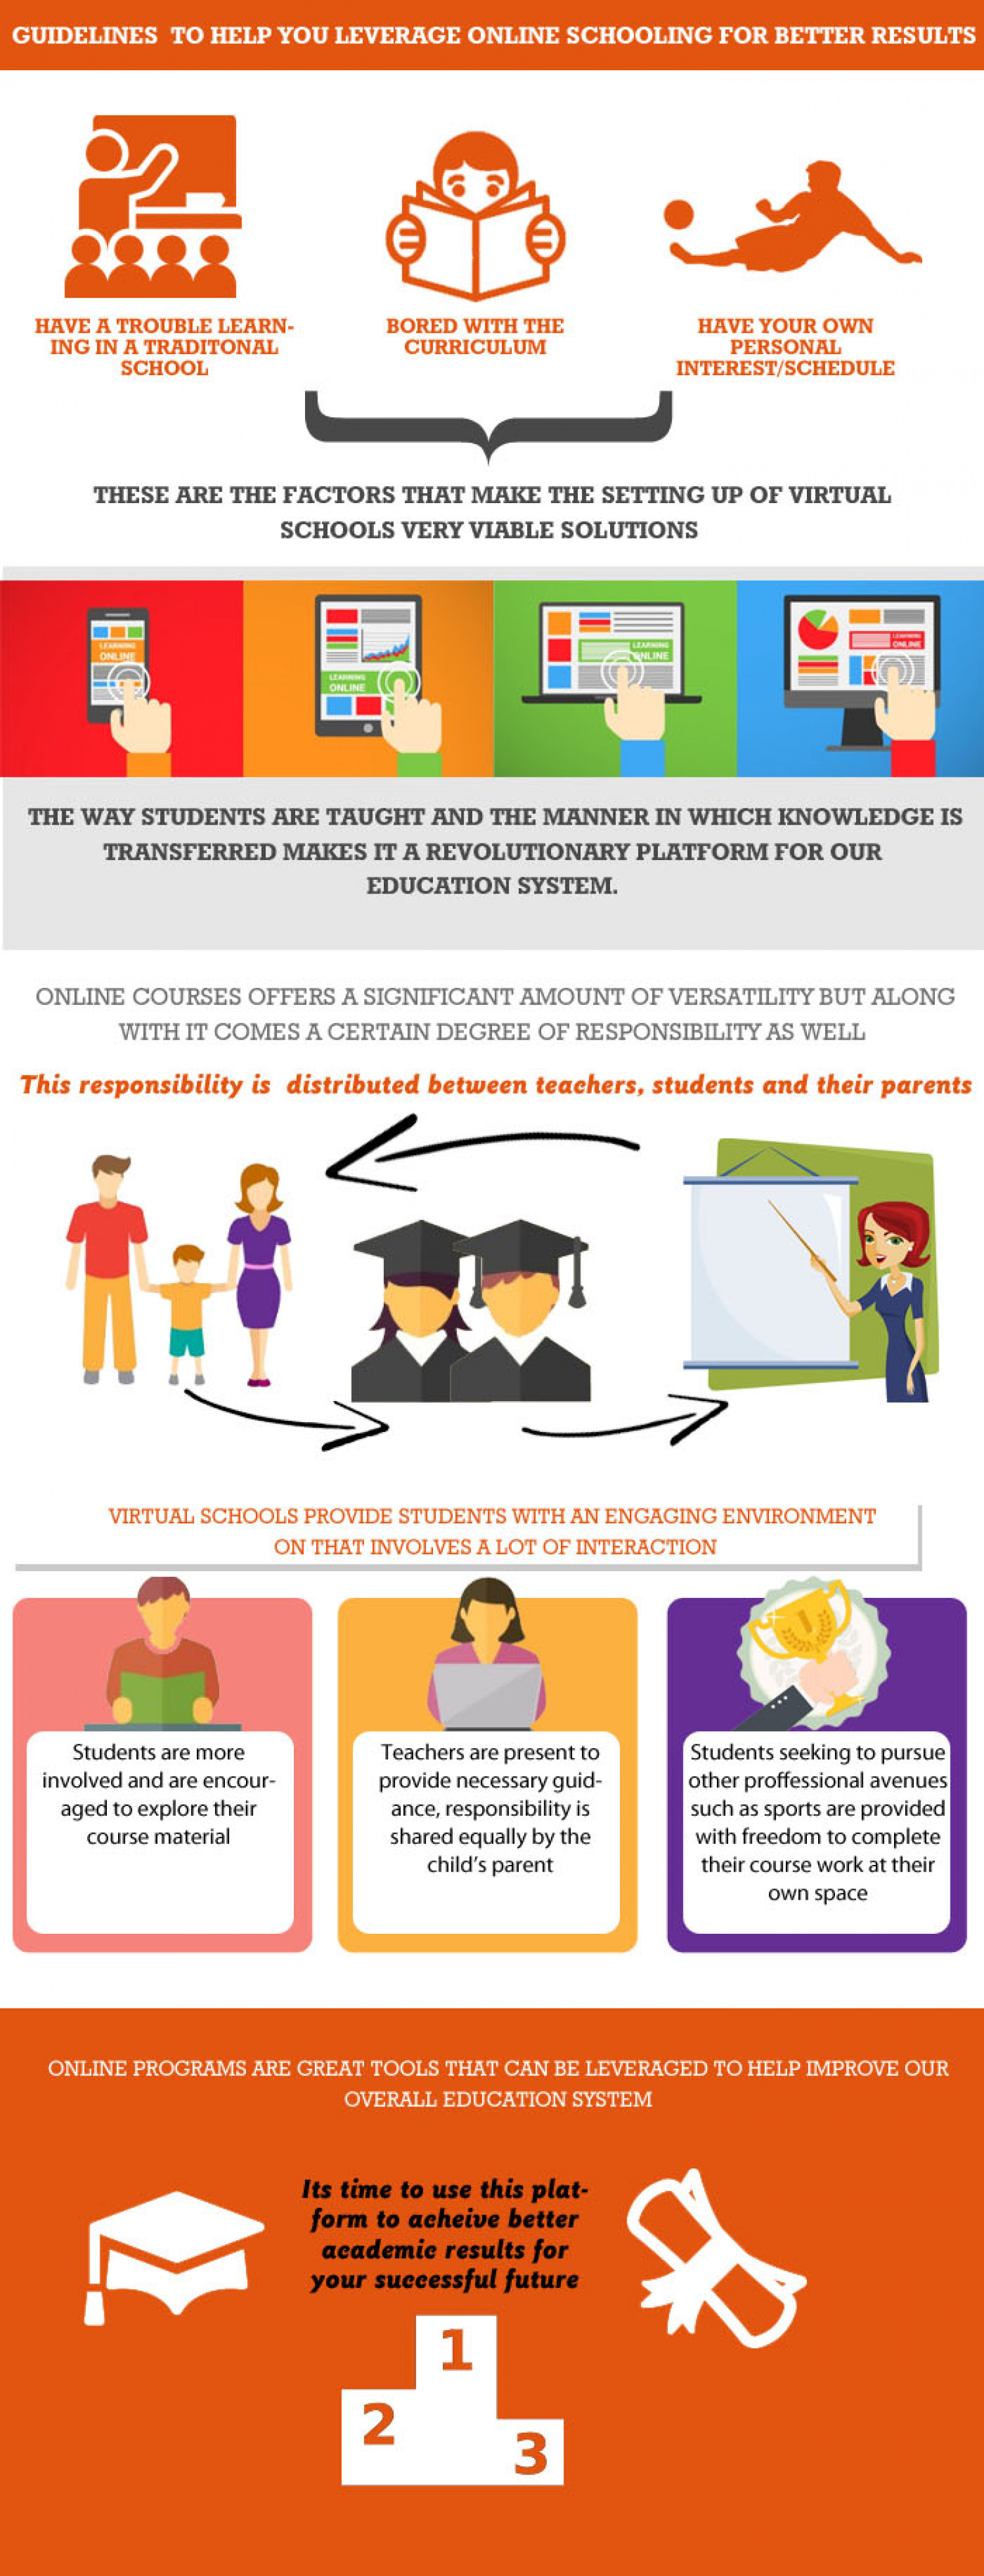 Guideline to Help You Leverage Online Schooling for Better Results Infographic